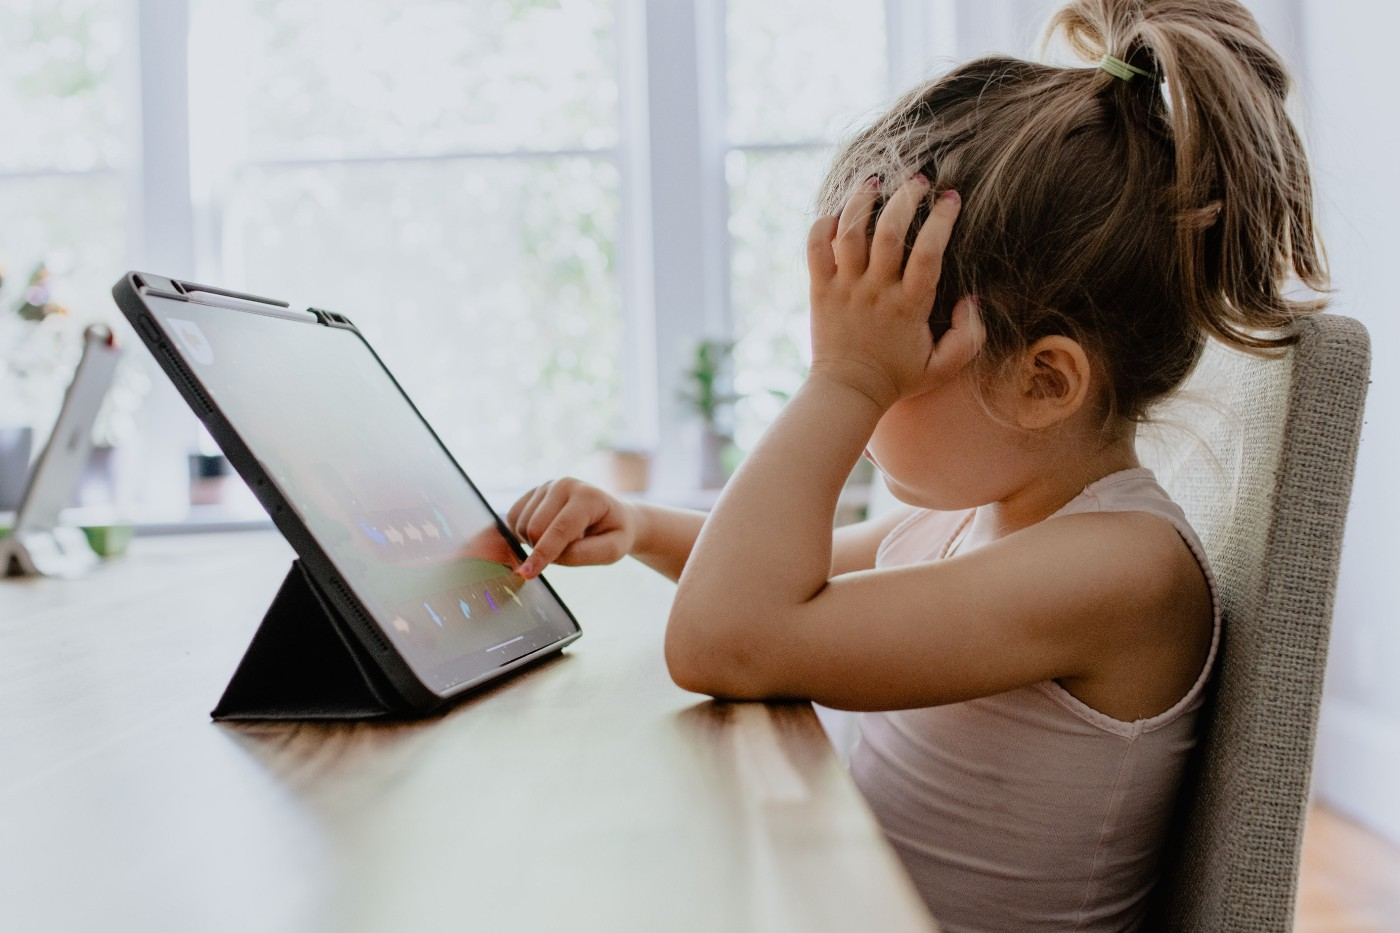 Frustrated child on tablet